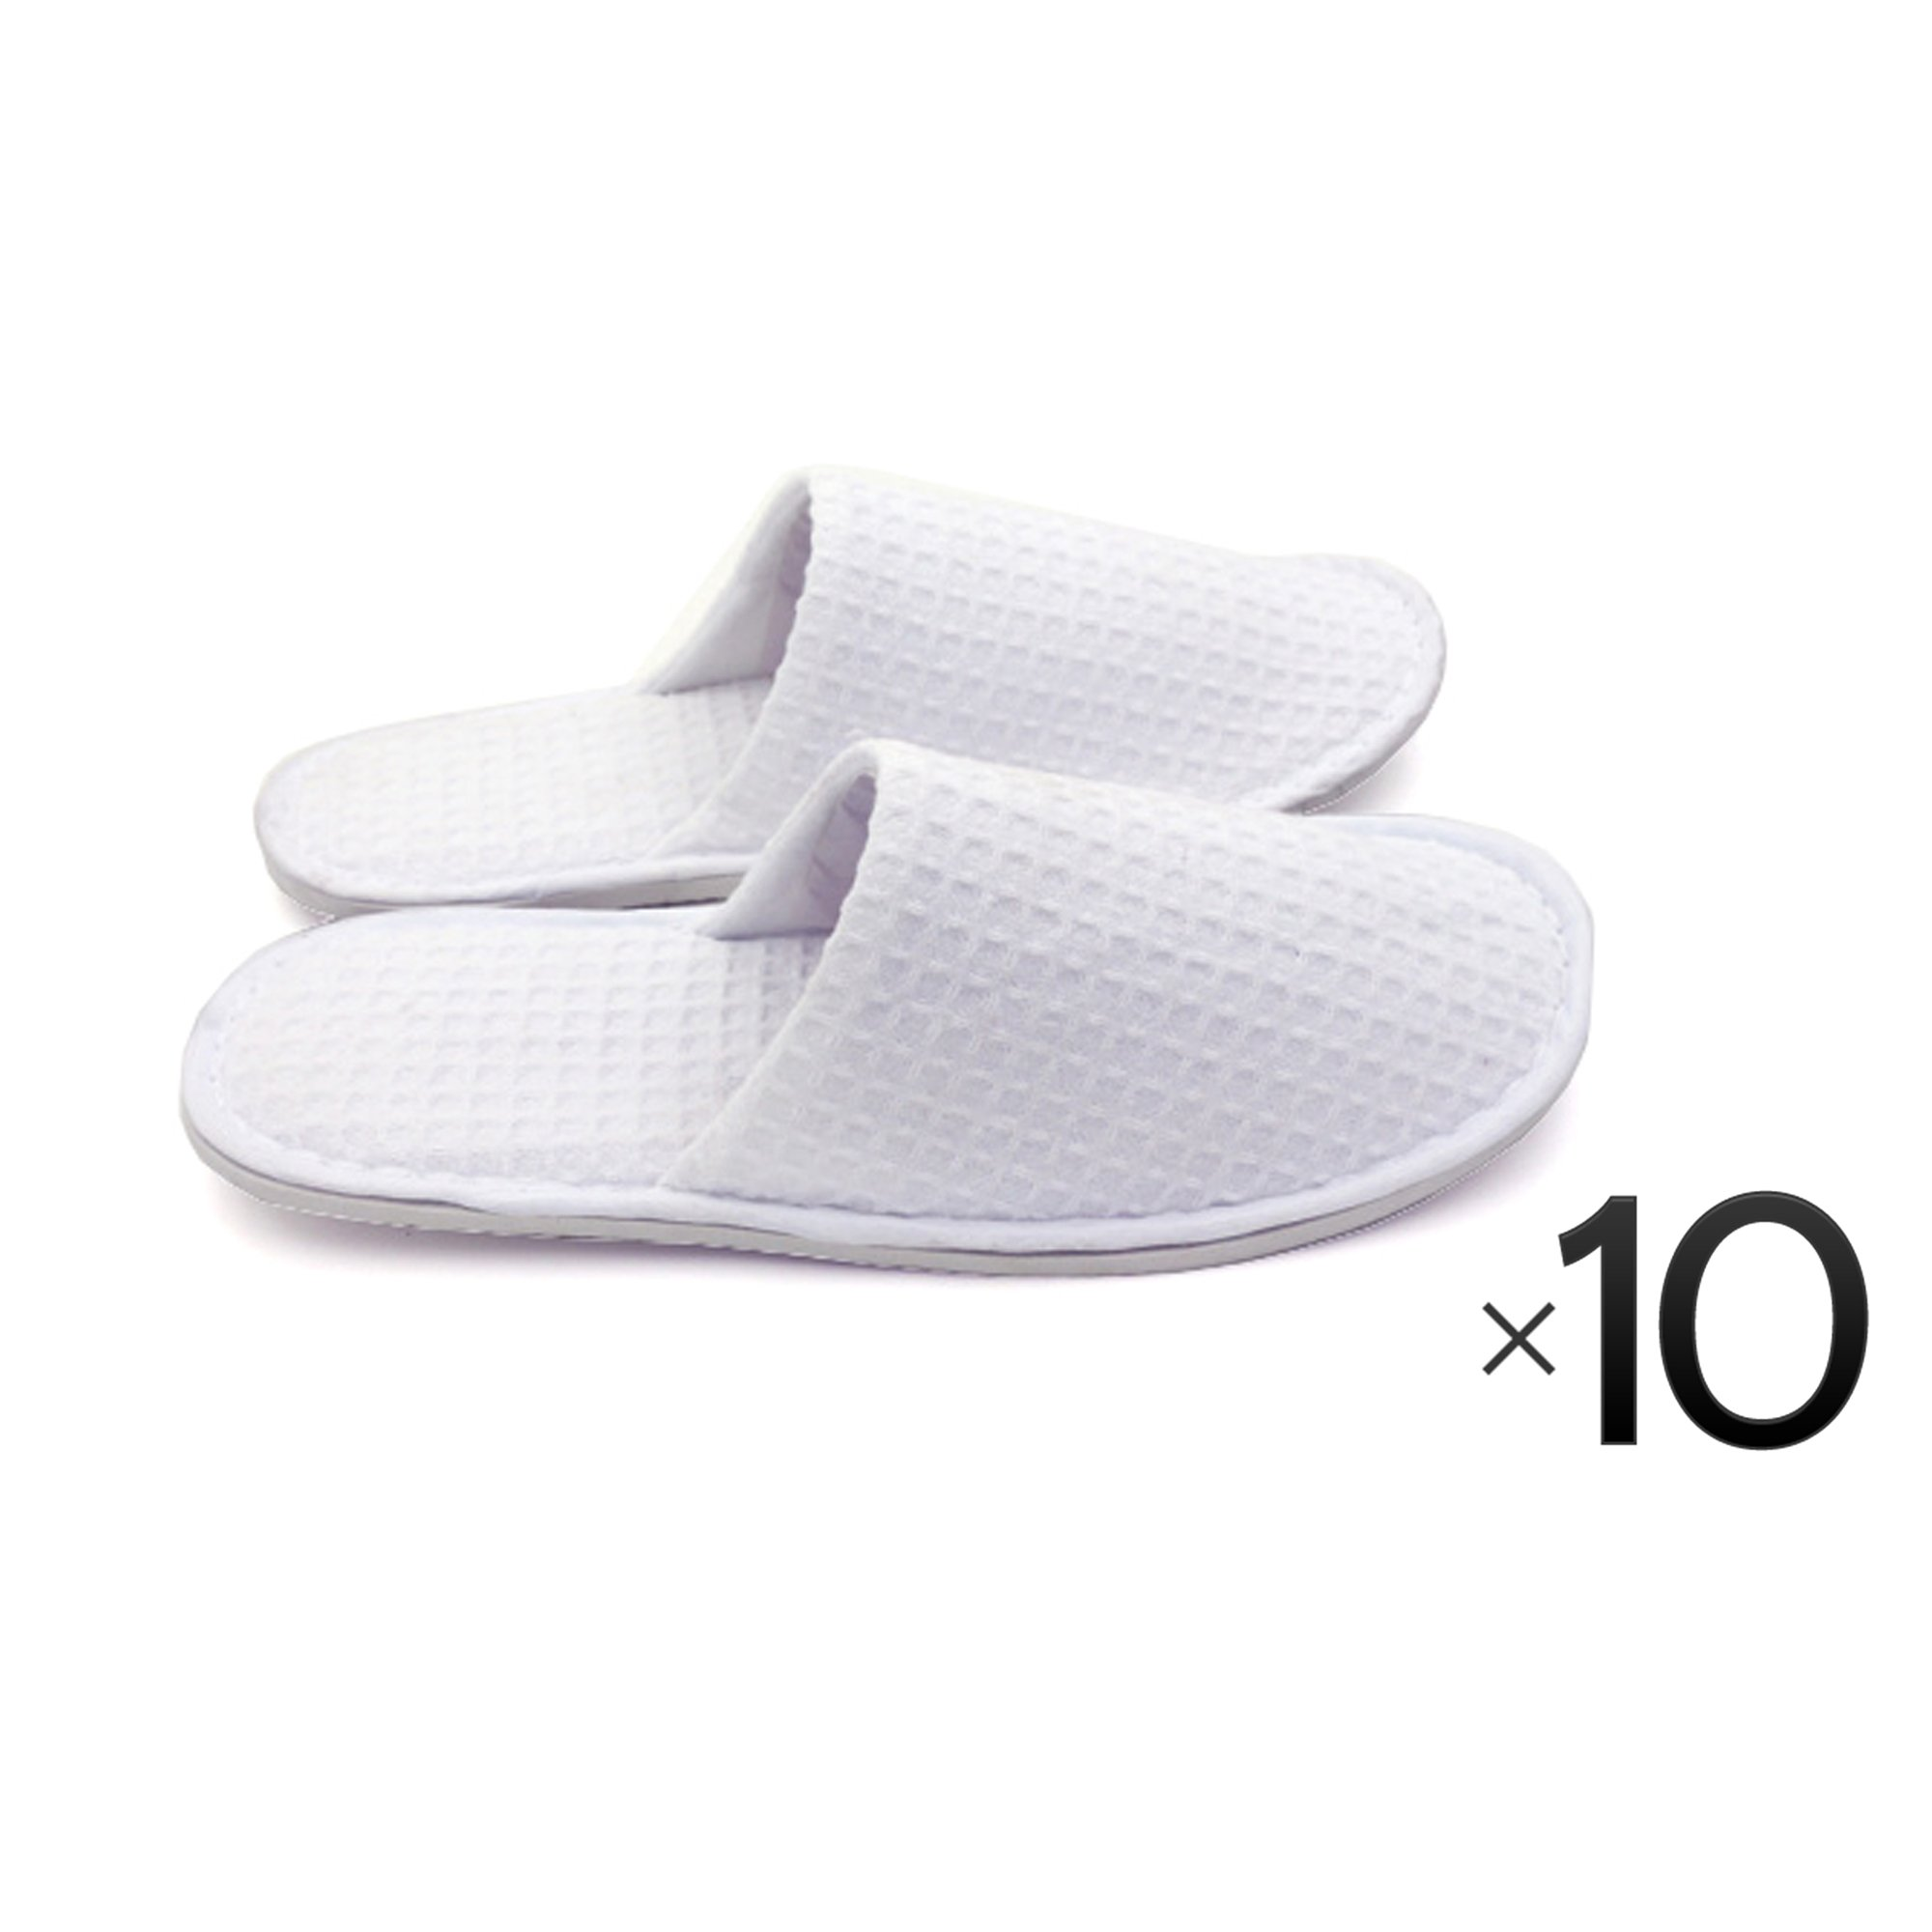 Waffle Cotton Cloth Slipper Slippers Salon Spa Hotel Men Women Closed Toes - 10 Pairs - White by Project E Beauty